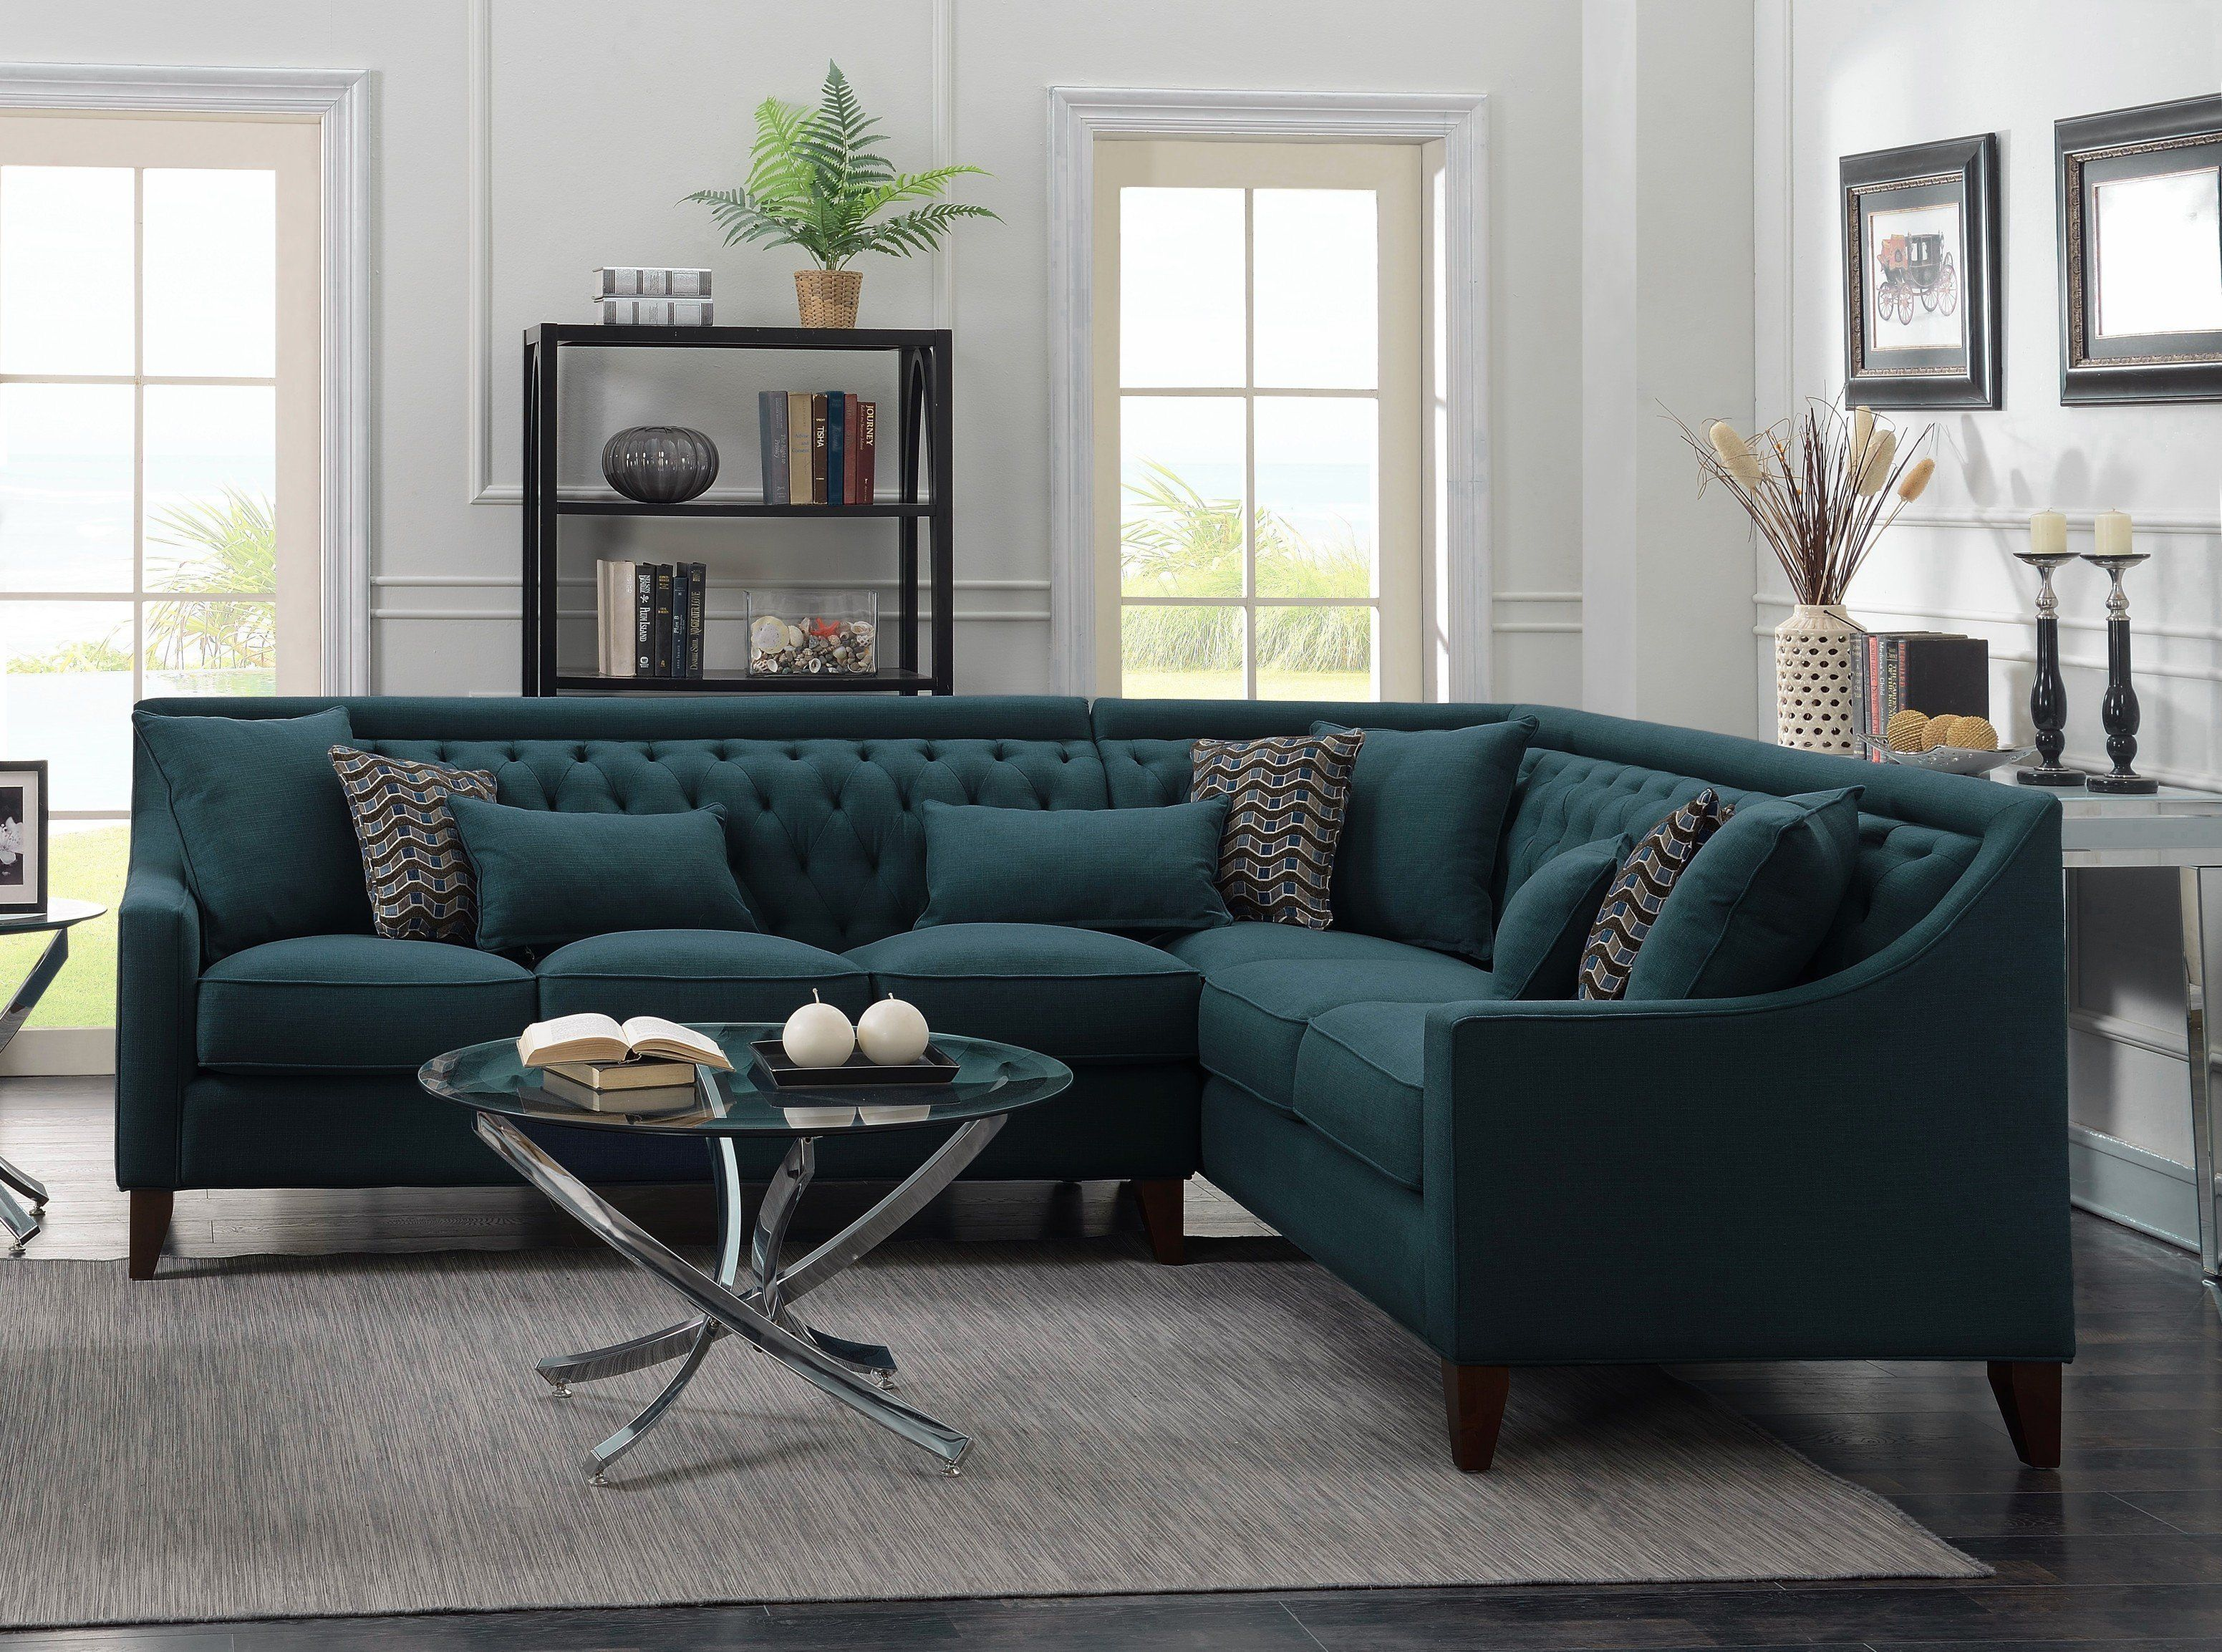 Iconic Home Aberdeen Linen Tufted Right Facing Sectional Sofa Teal Contemporary Sectional Sofa Contemporary Home Decor Contemporary Sectional